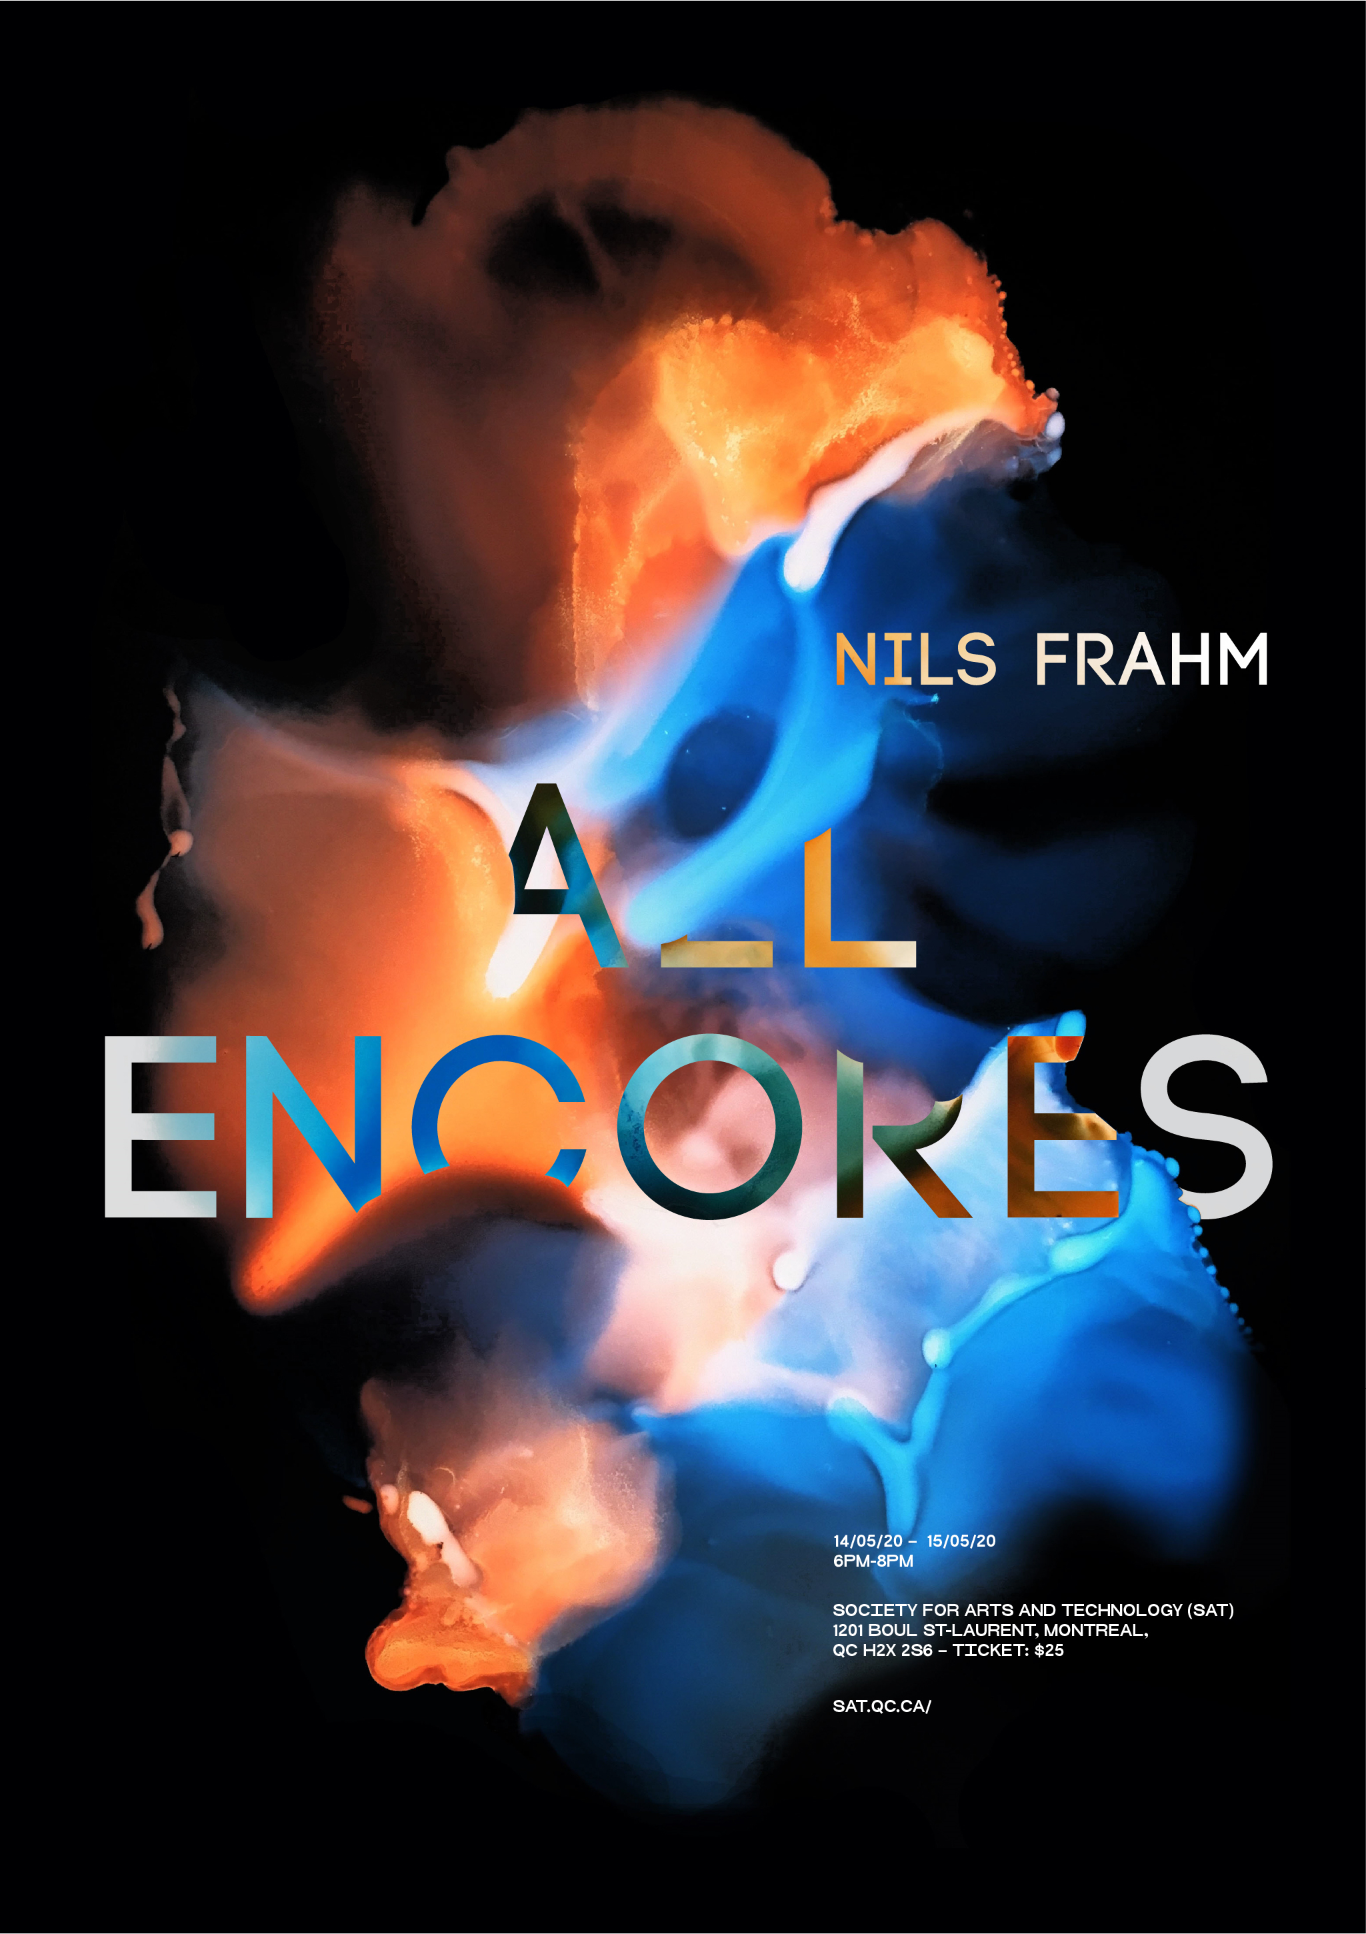 All Encores poster image